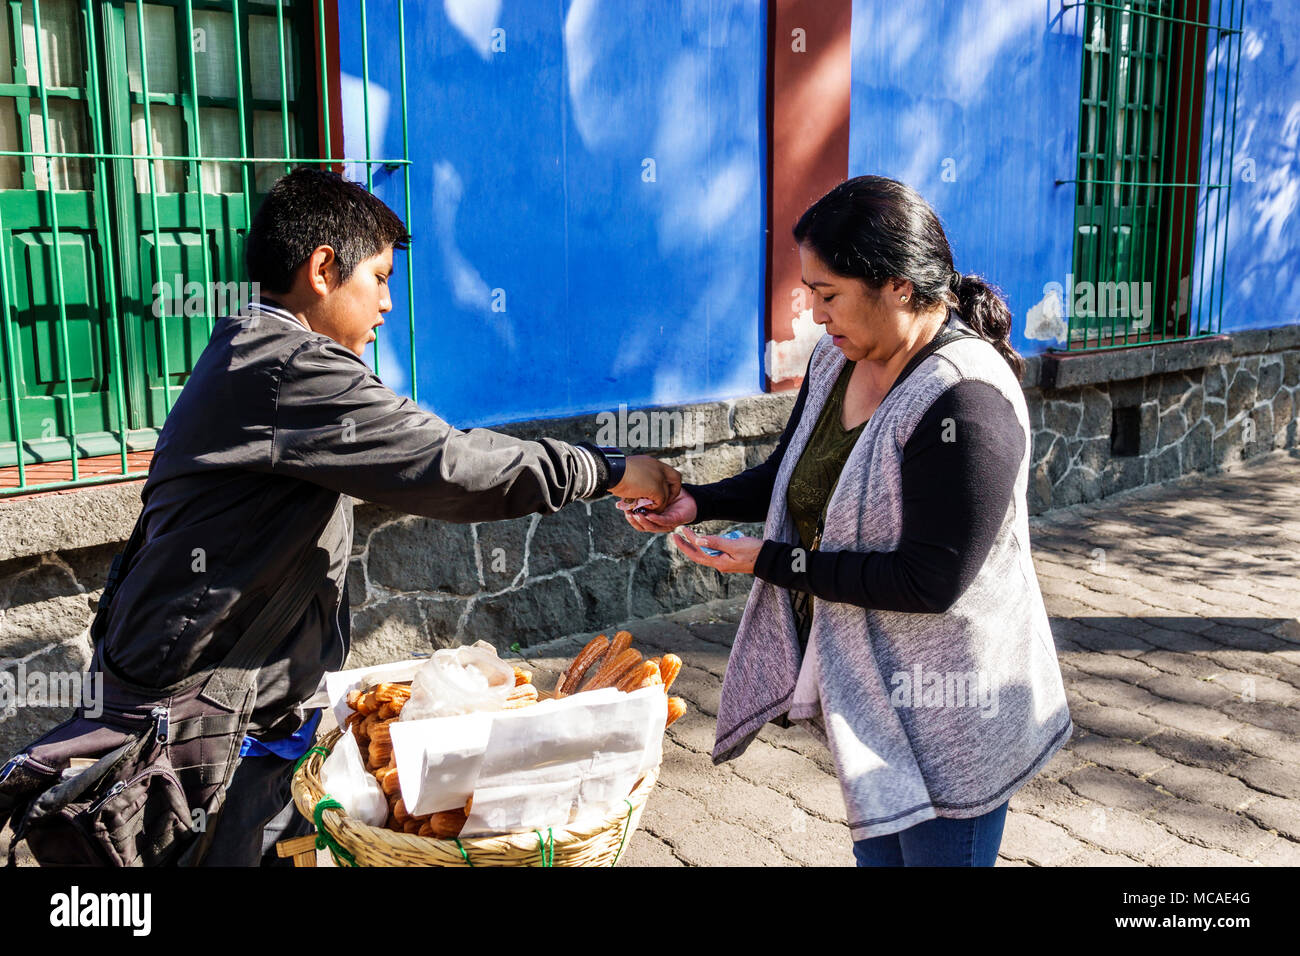 Mexico City Mexico Ciudad de Federal District Distrito DF D.F. CDMX Mexican Hispanic Coyoacan Del Carmen Museo Frida Kahlo museum Caza Azul Blue House exterior boy working sidewalk woman giving change vendor churros North America American - Stock Image